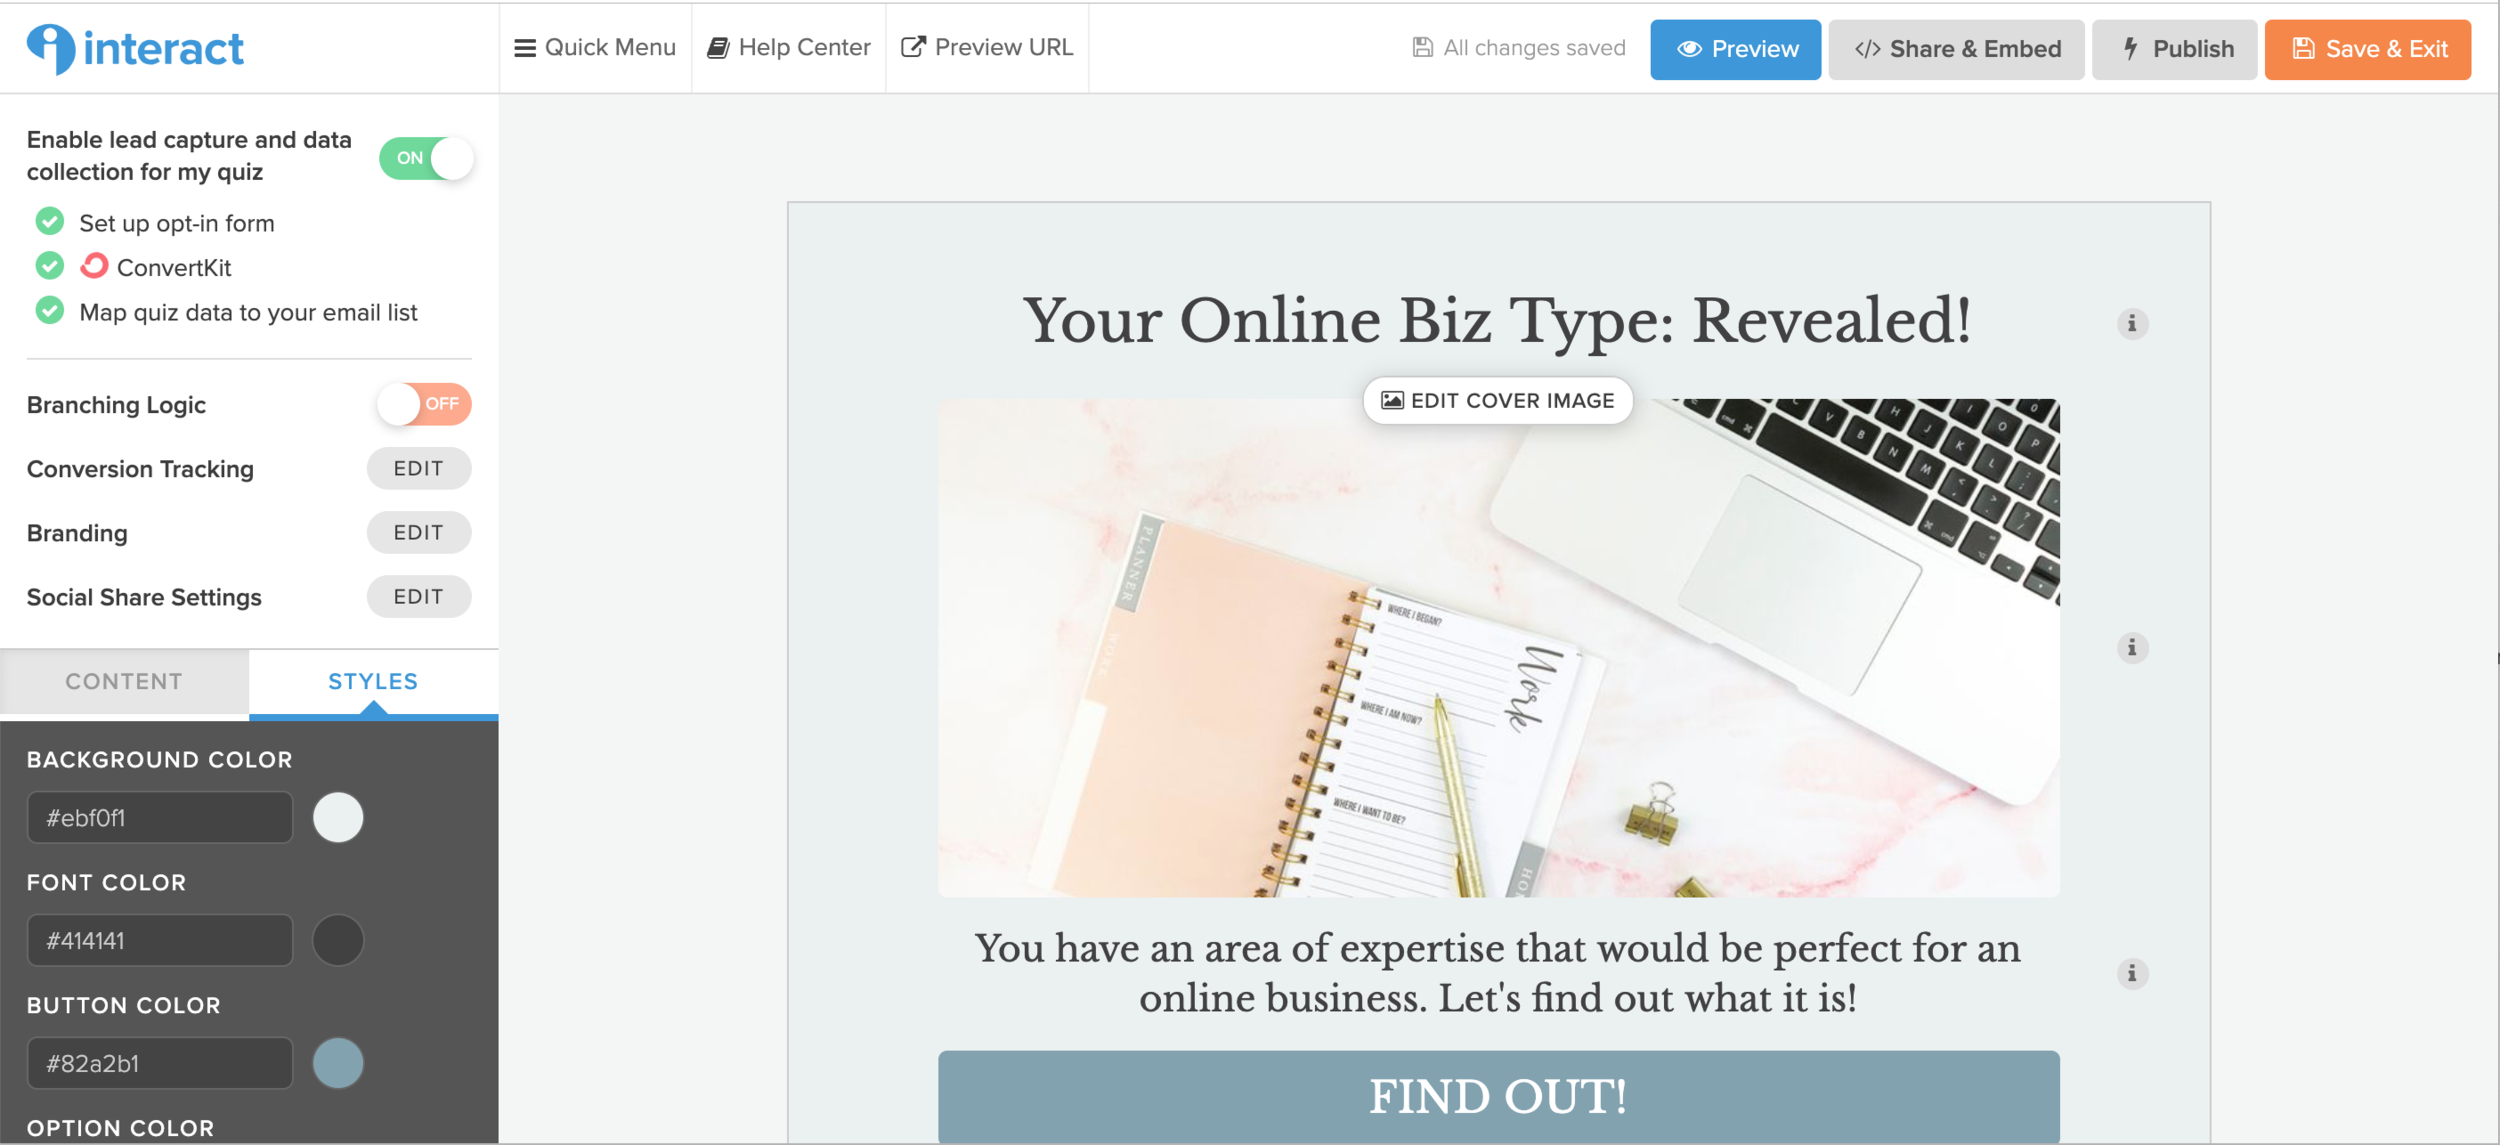 How to Use a Quiz to Grow Your Email List with Interact